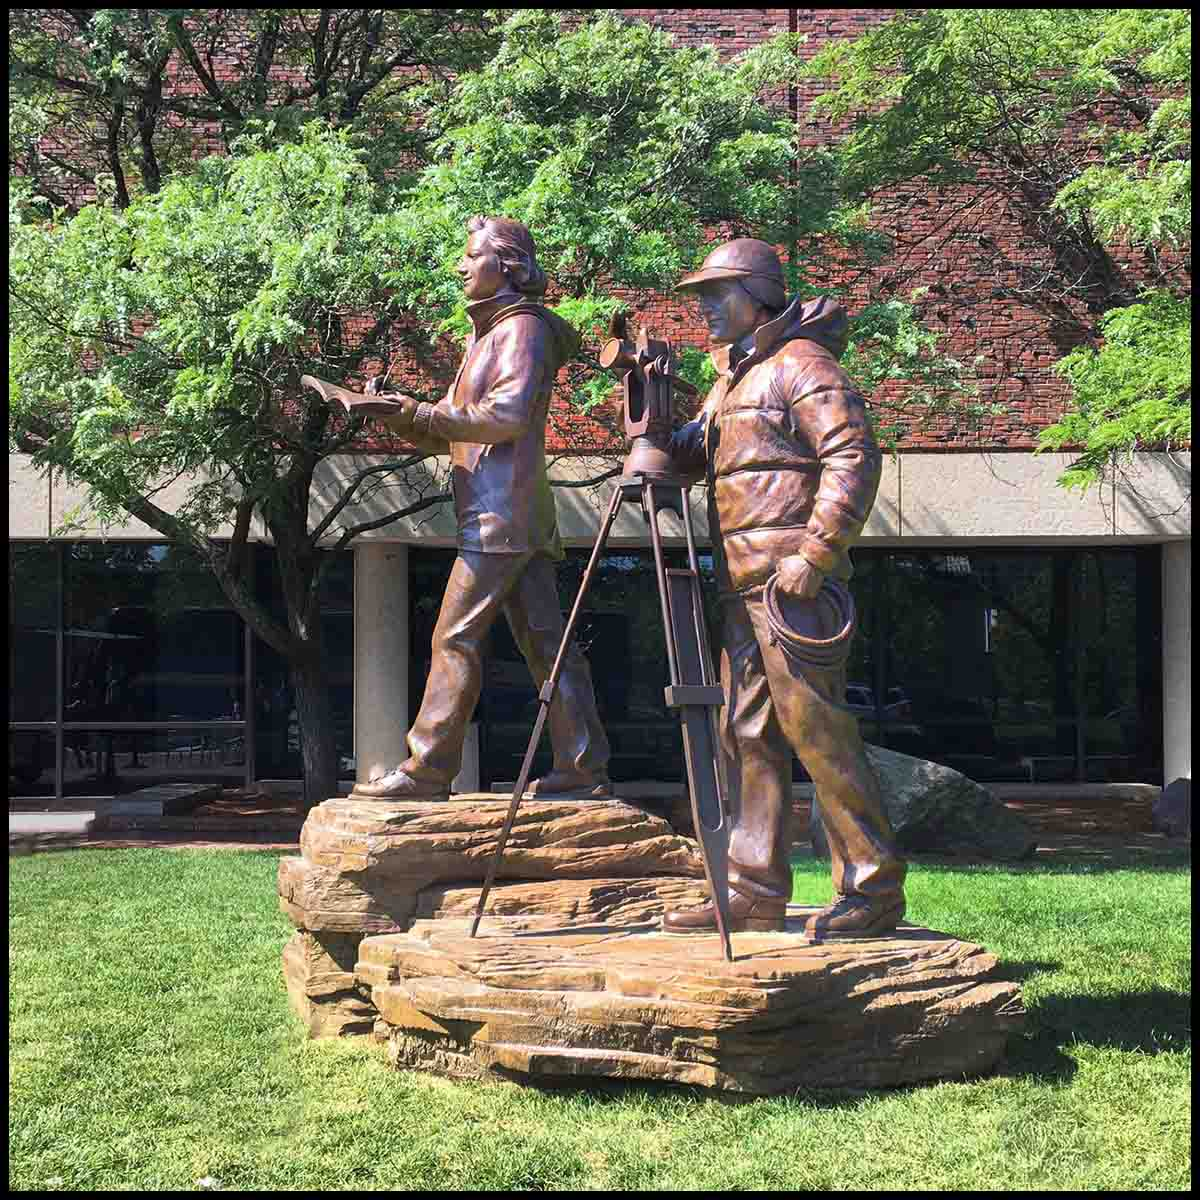 photo of bronze sculpture of man and woman in winter gear with theodolite on tripod and woman taking notes, standing on rock surface in front of a building on a green lawn